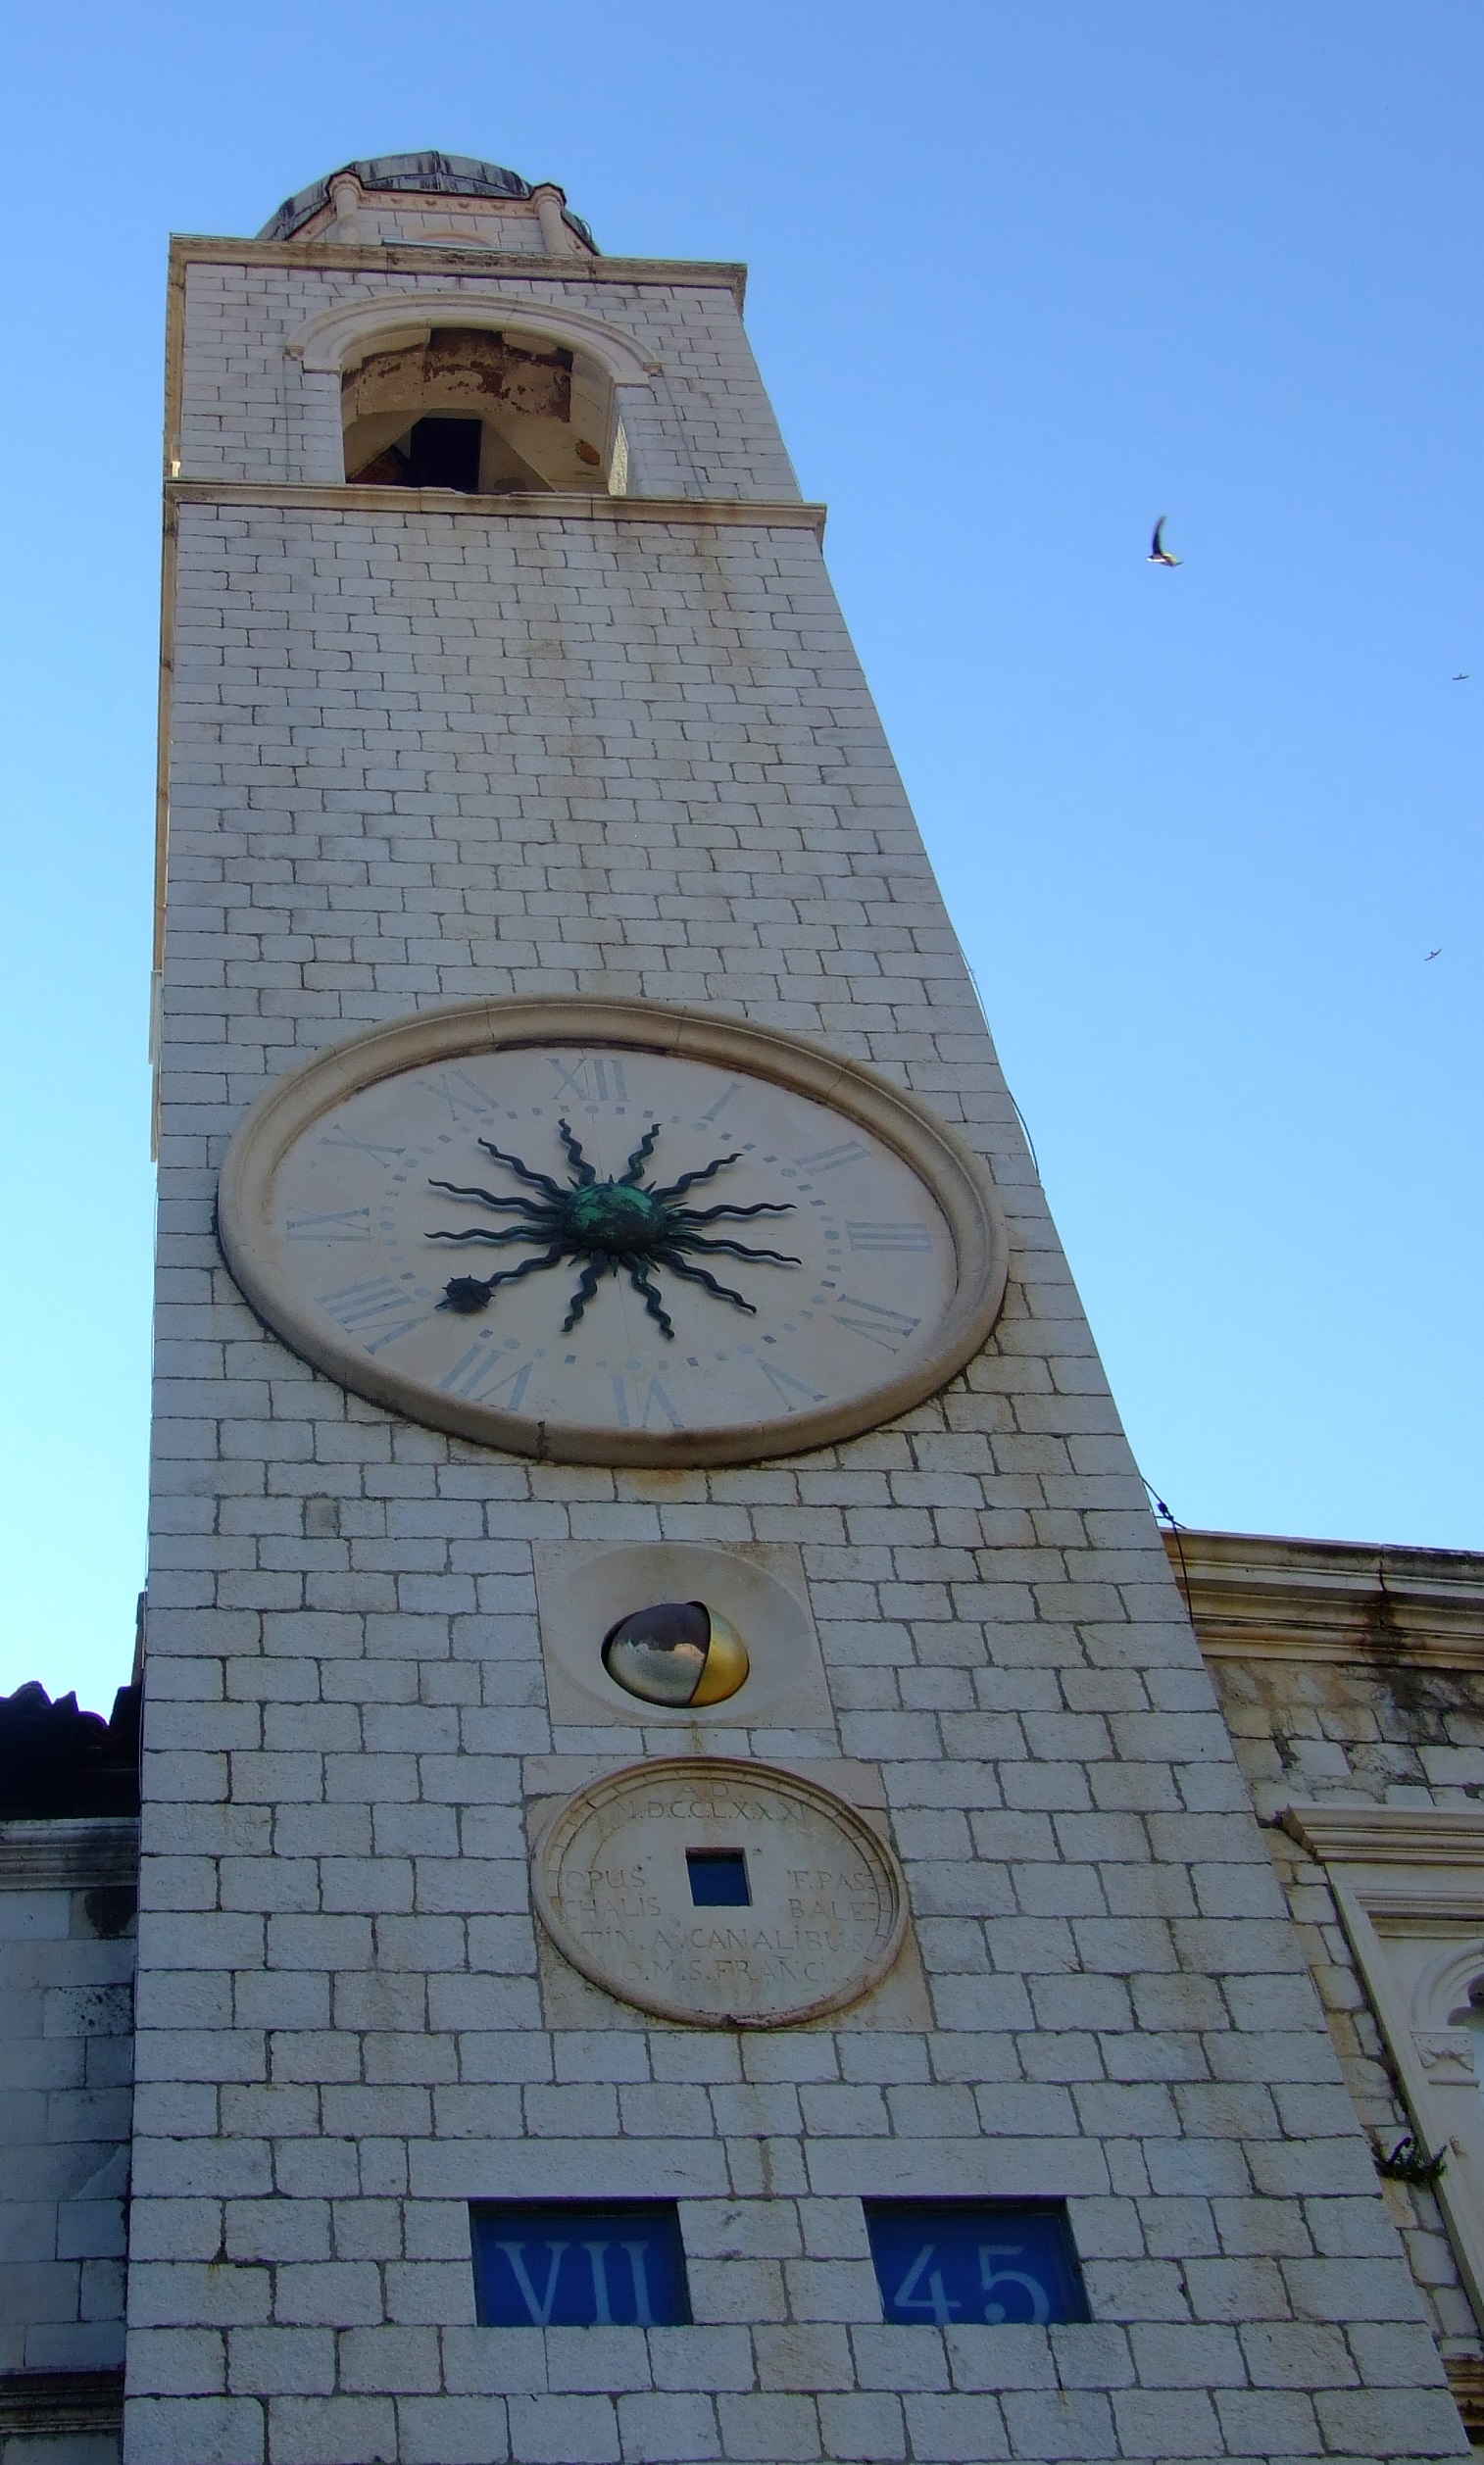 Dubrovnik Old City Clock Tower at 07:45 AM